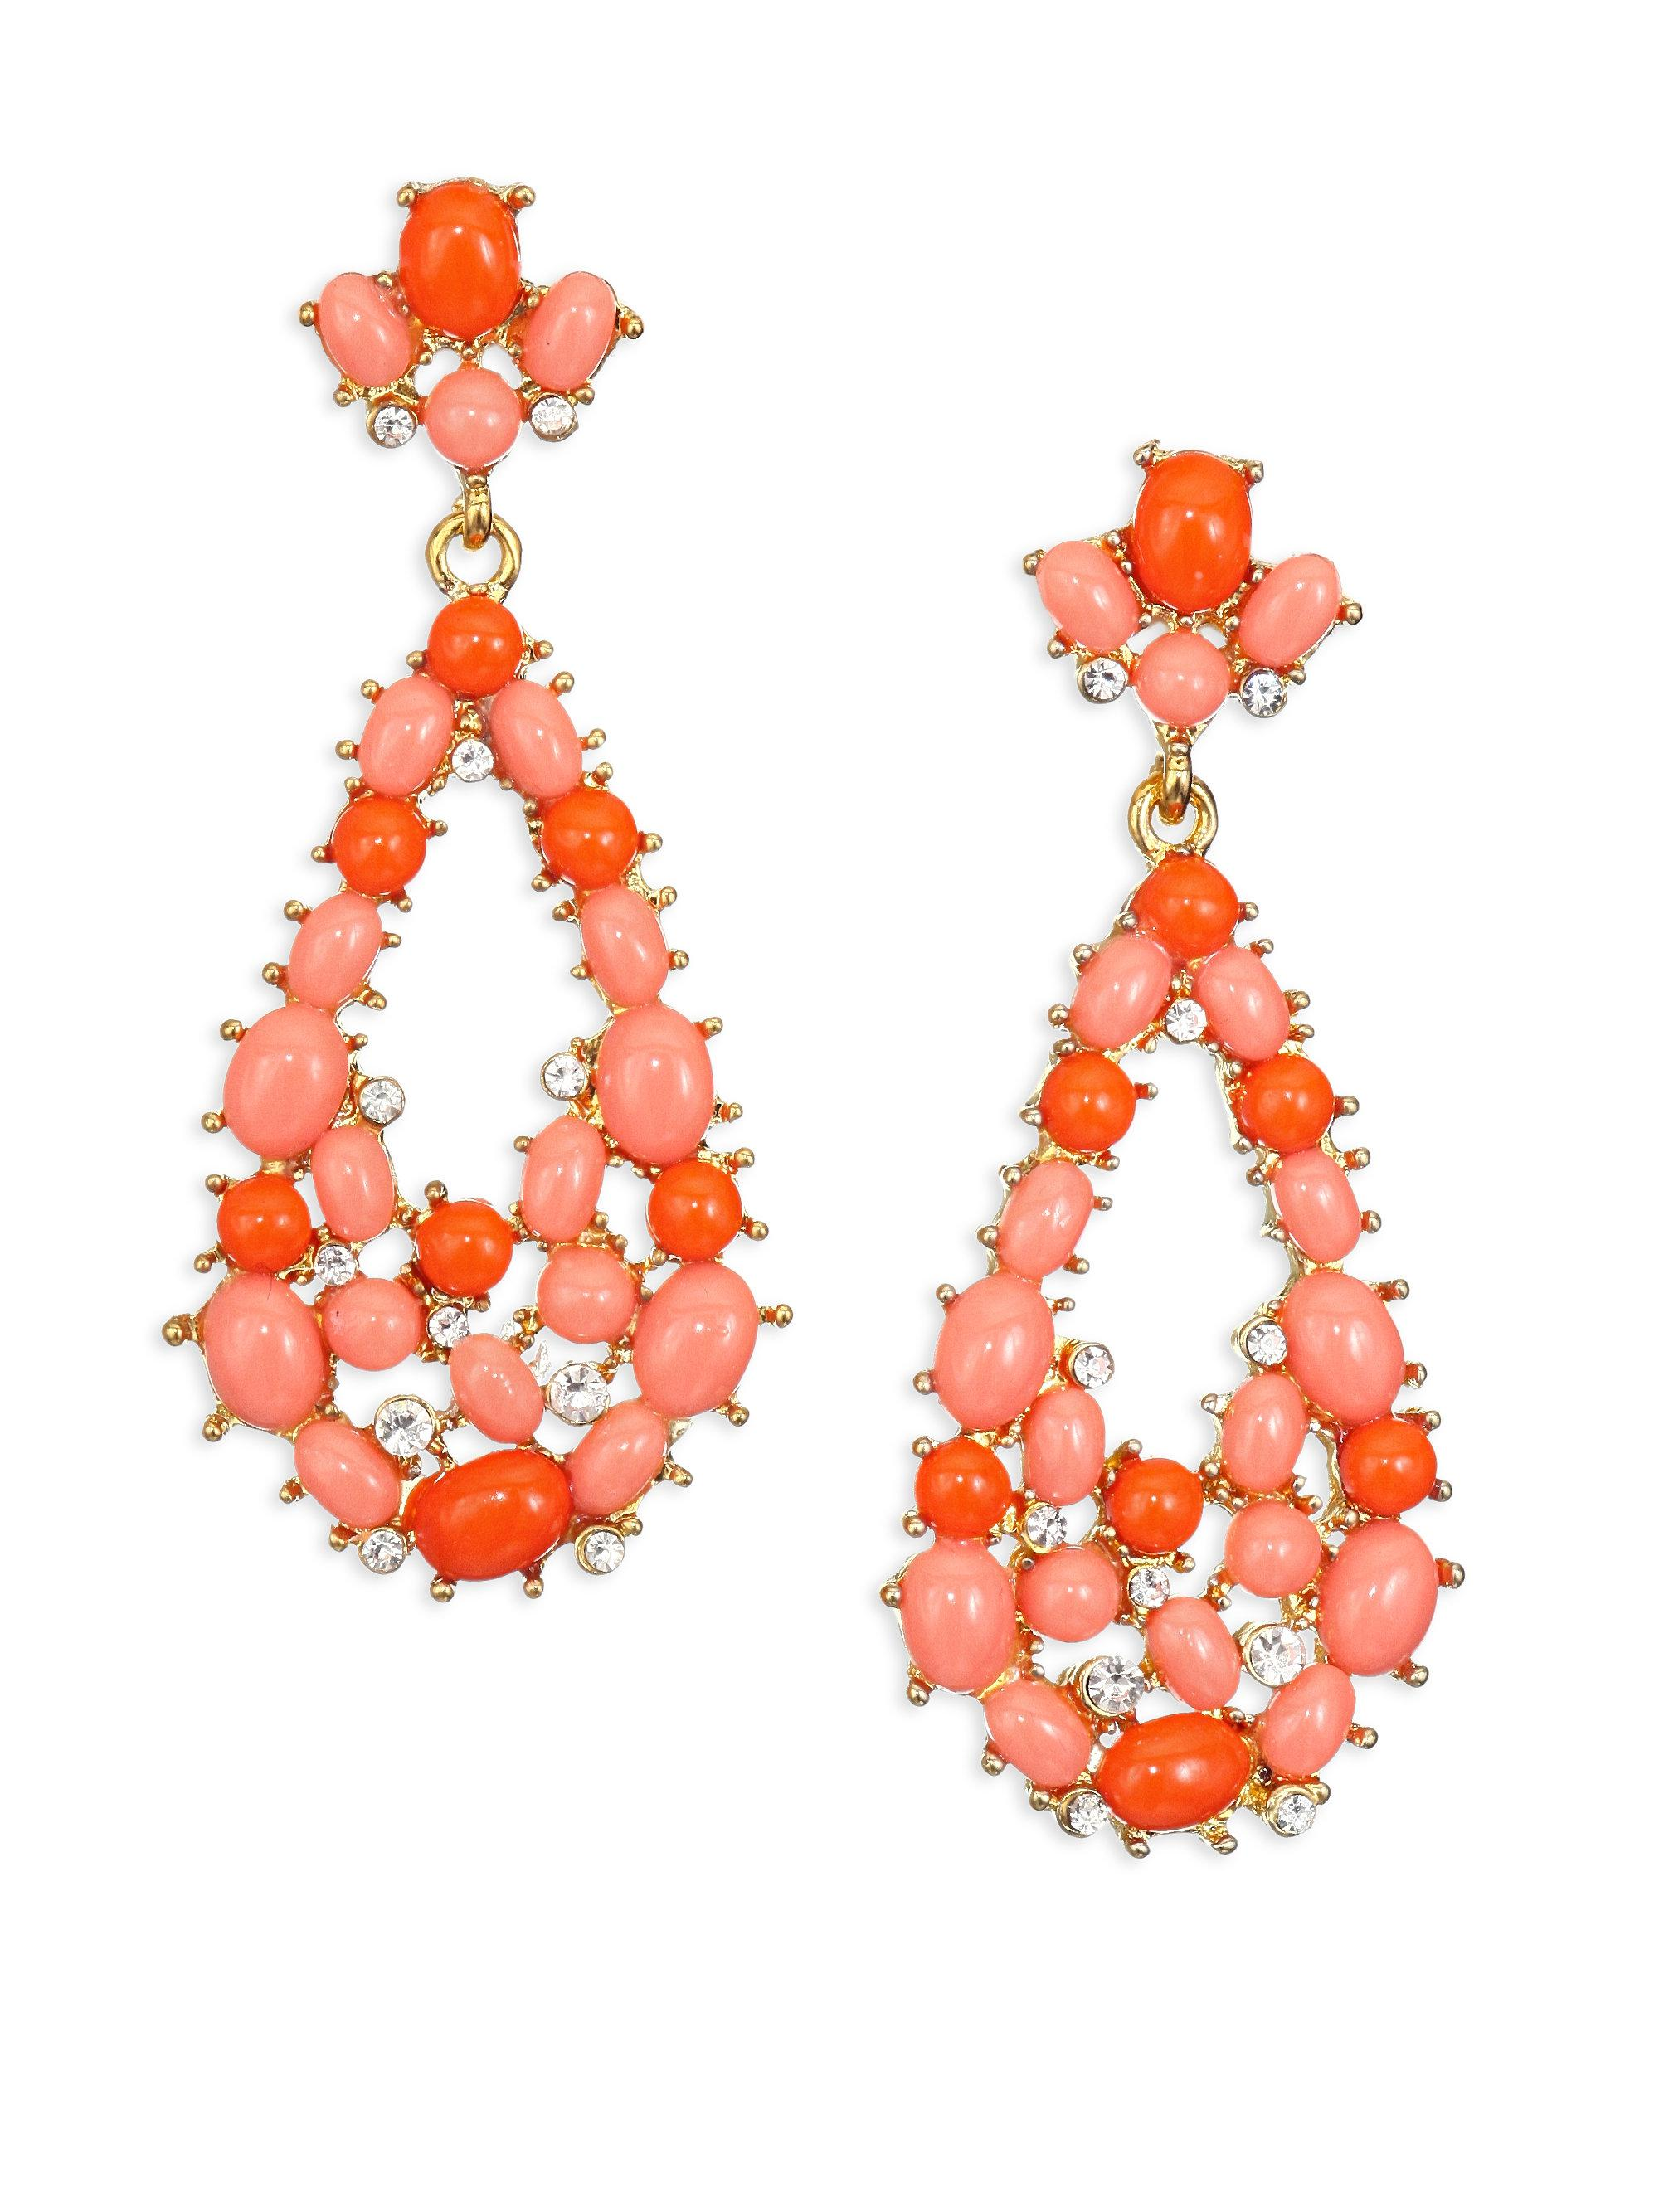 Kenneth Jay Lane Coral Shell Clip Earrings Coral QLj02y4t